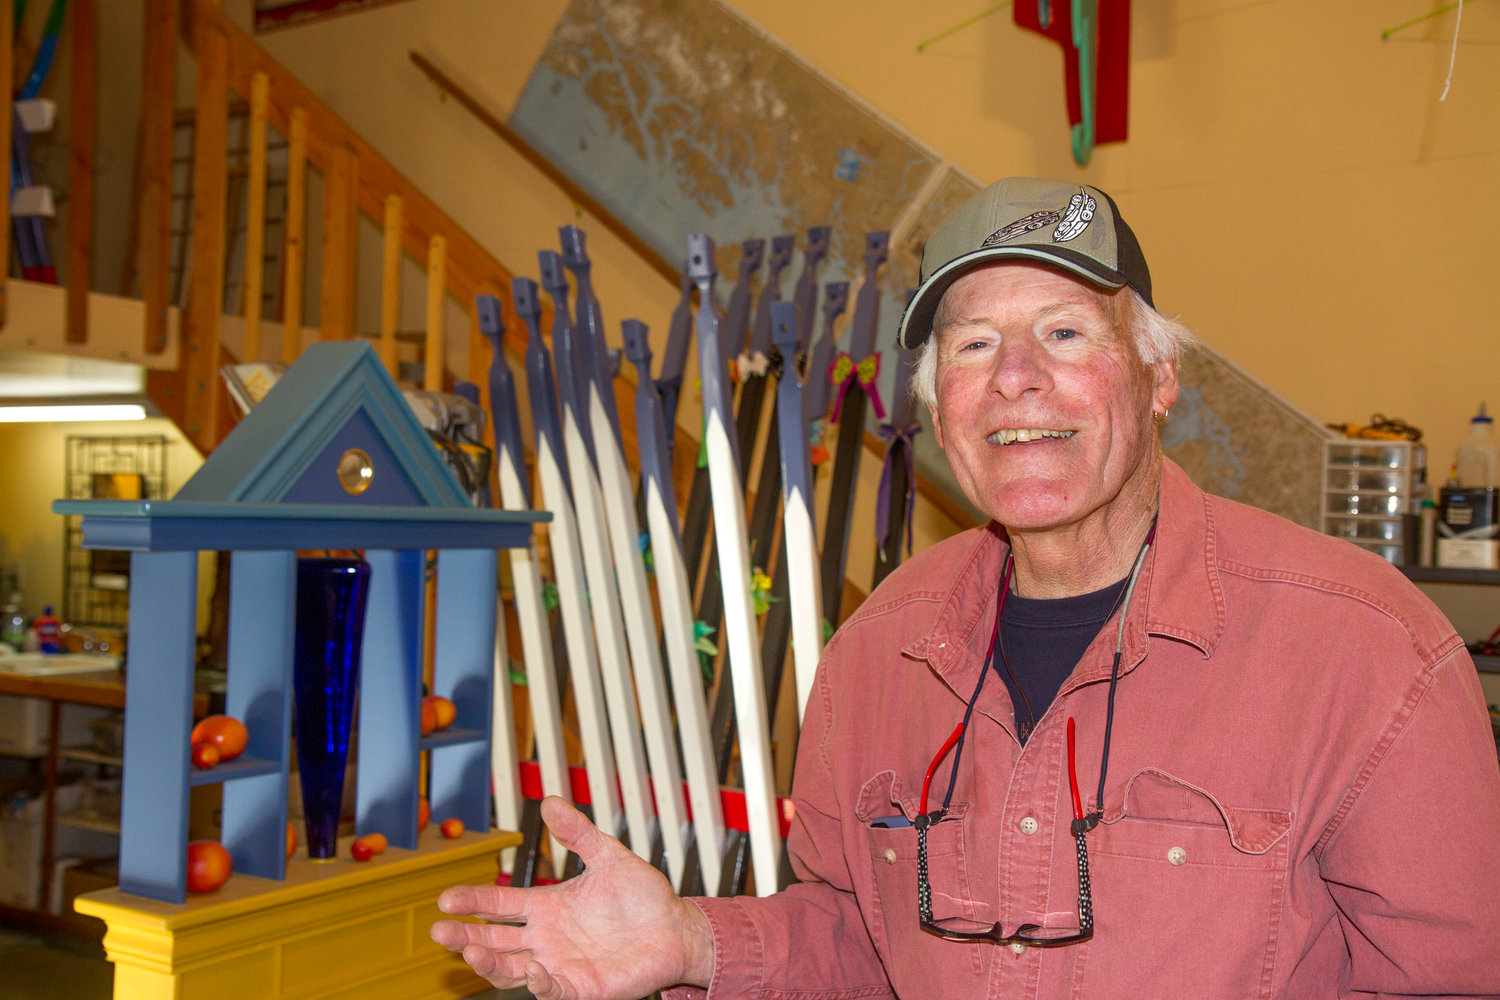 Working out of his Port Townsend studio, Schnick, 74, creates about three new pieces every two months, he said, adding he is inspired by often overlooked items.